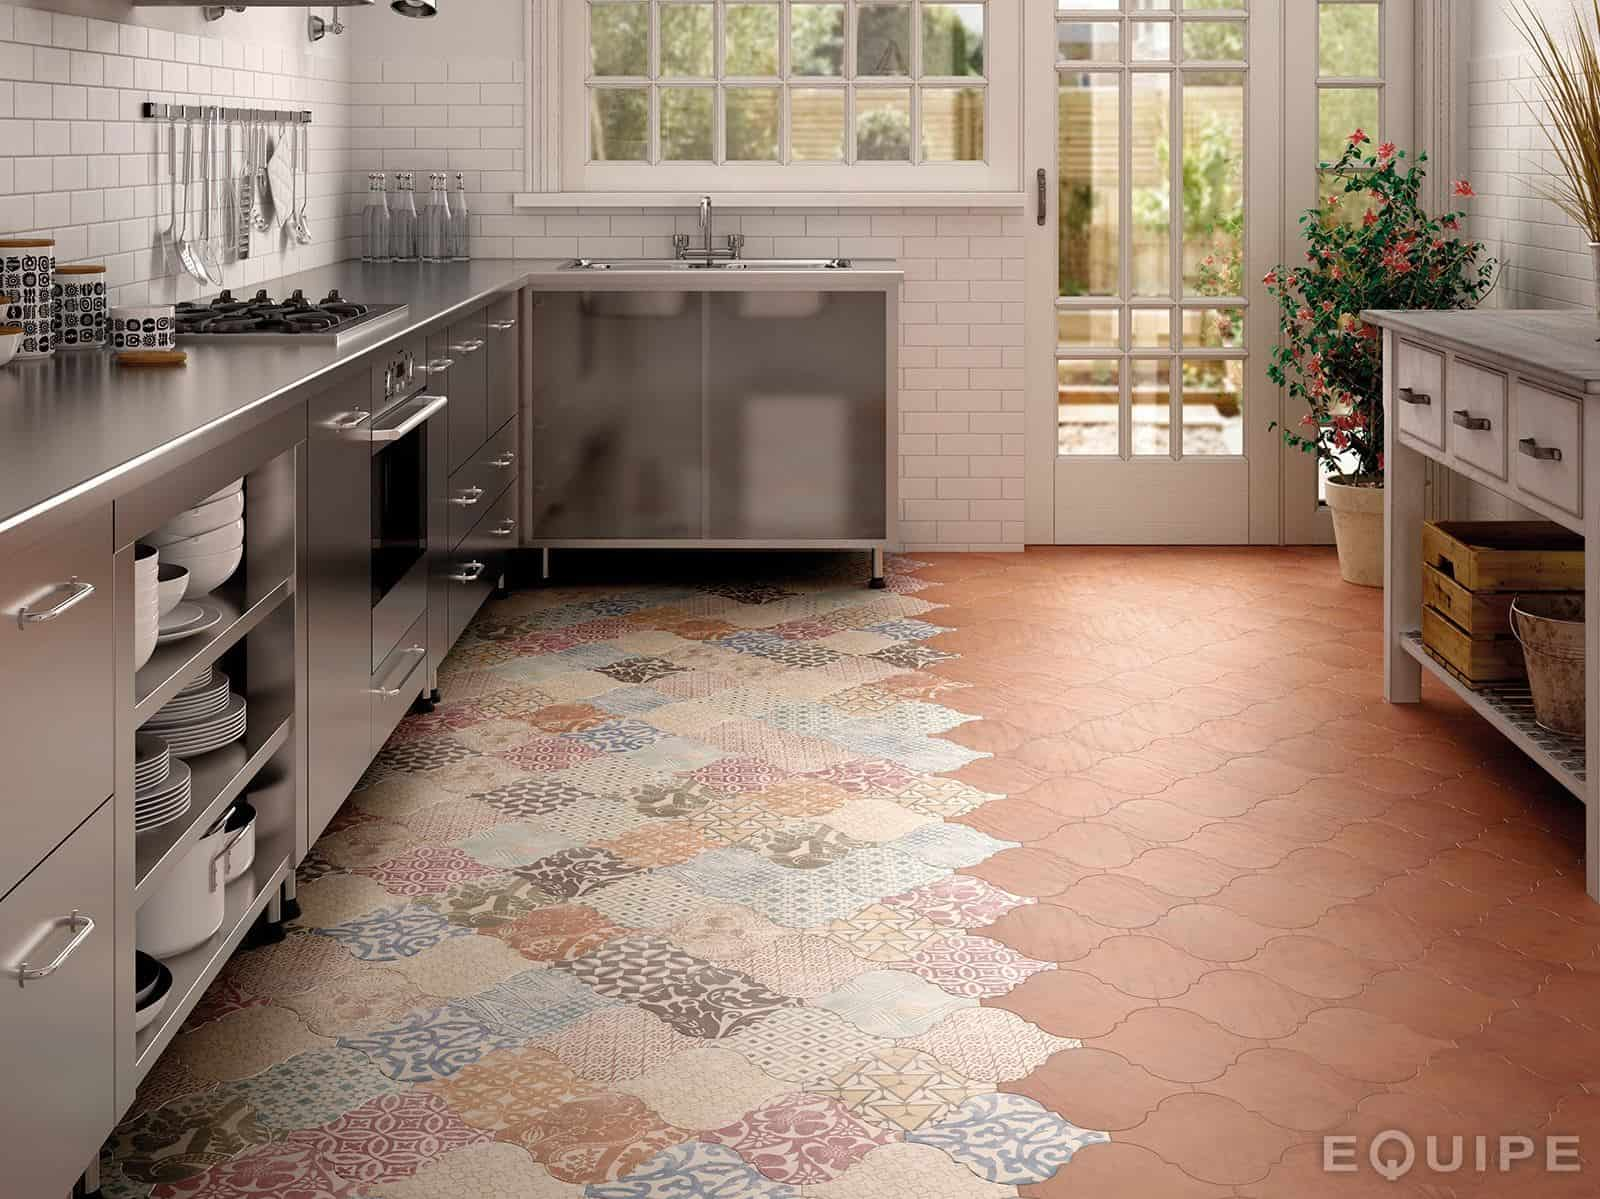 kitchen tiles for floor, kitchen